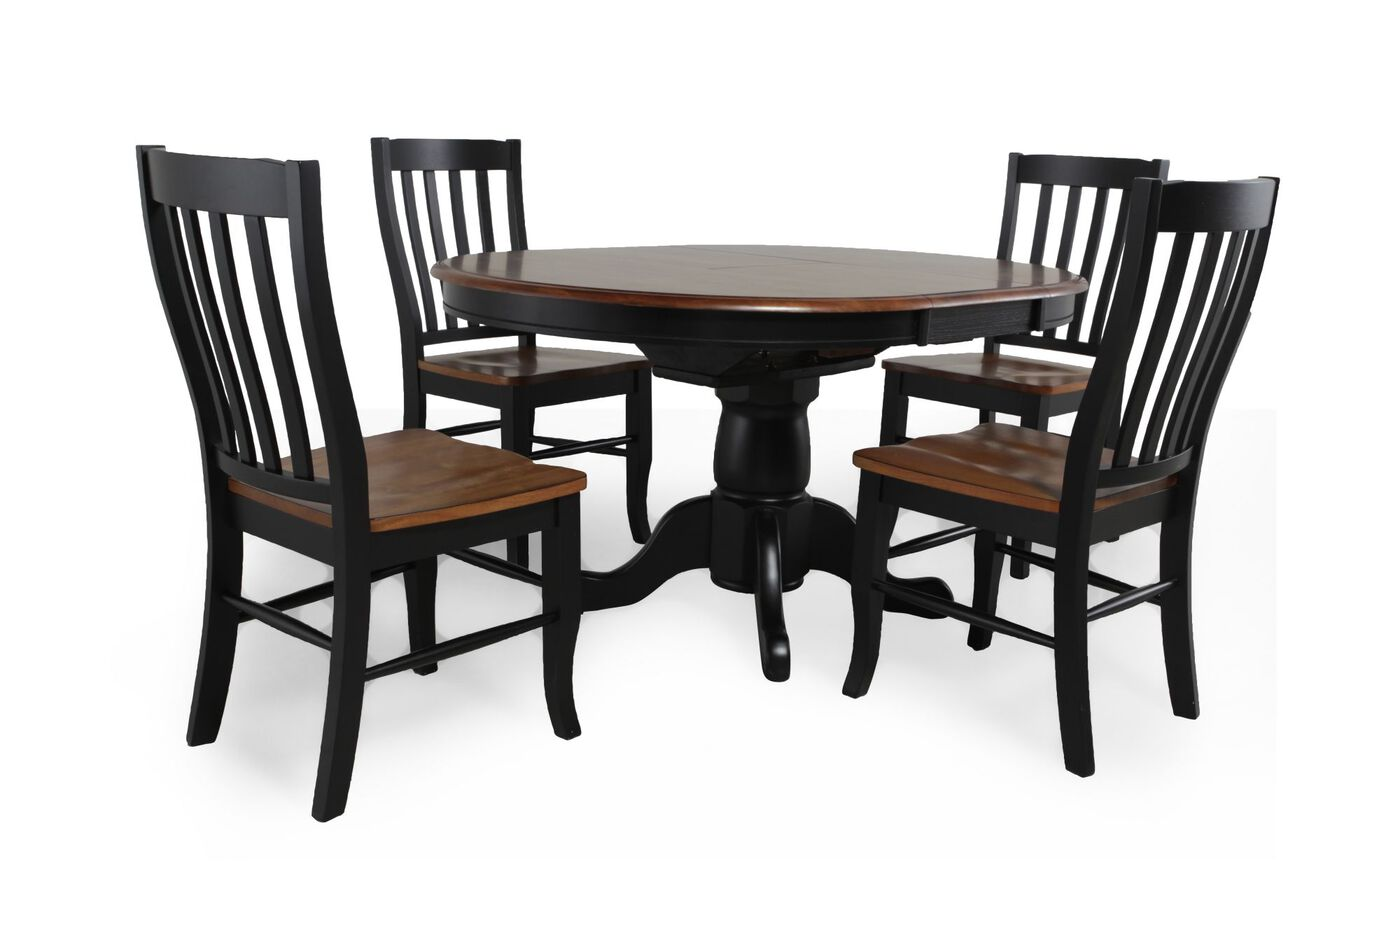 Discounted Dining Room Sets Images DINING ROOM Surprising  : WIN DQ14257AE5E0475PC from favefaves.com size 1400 x 933 jpeg 84kB